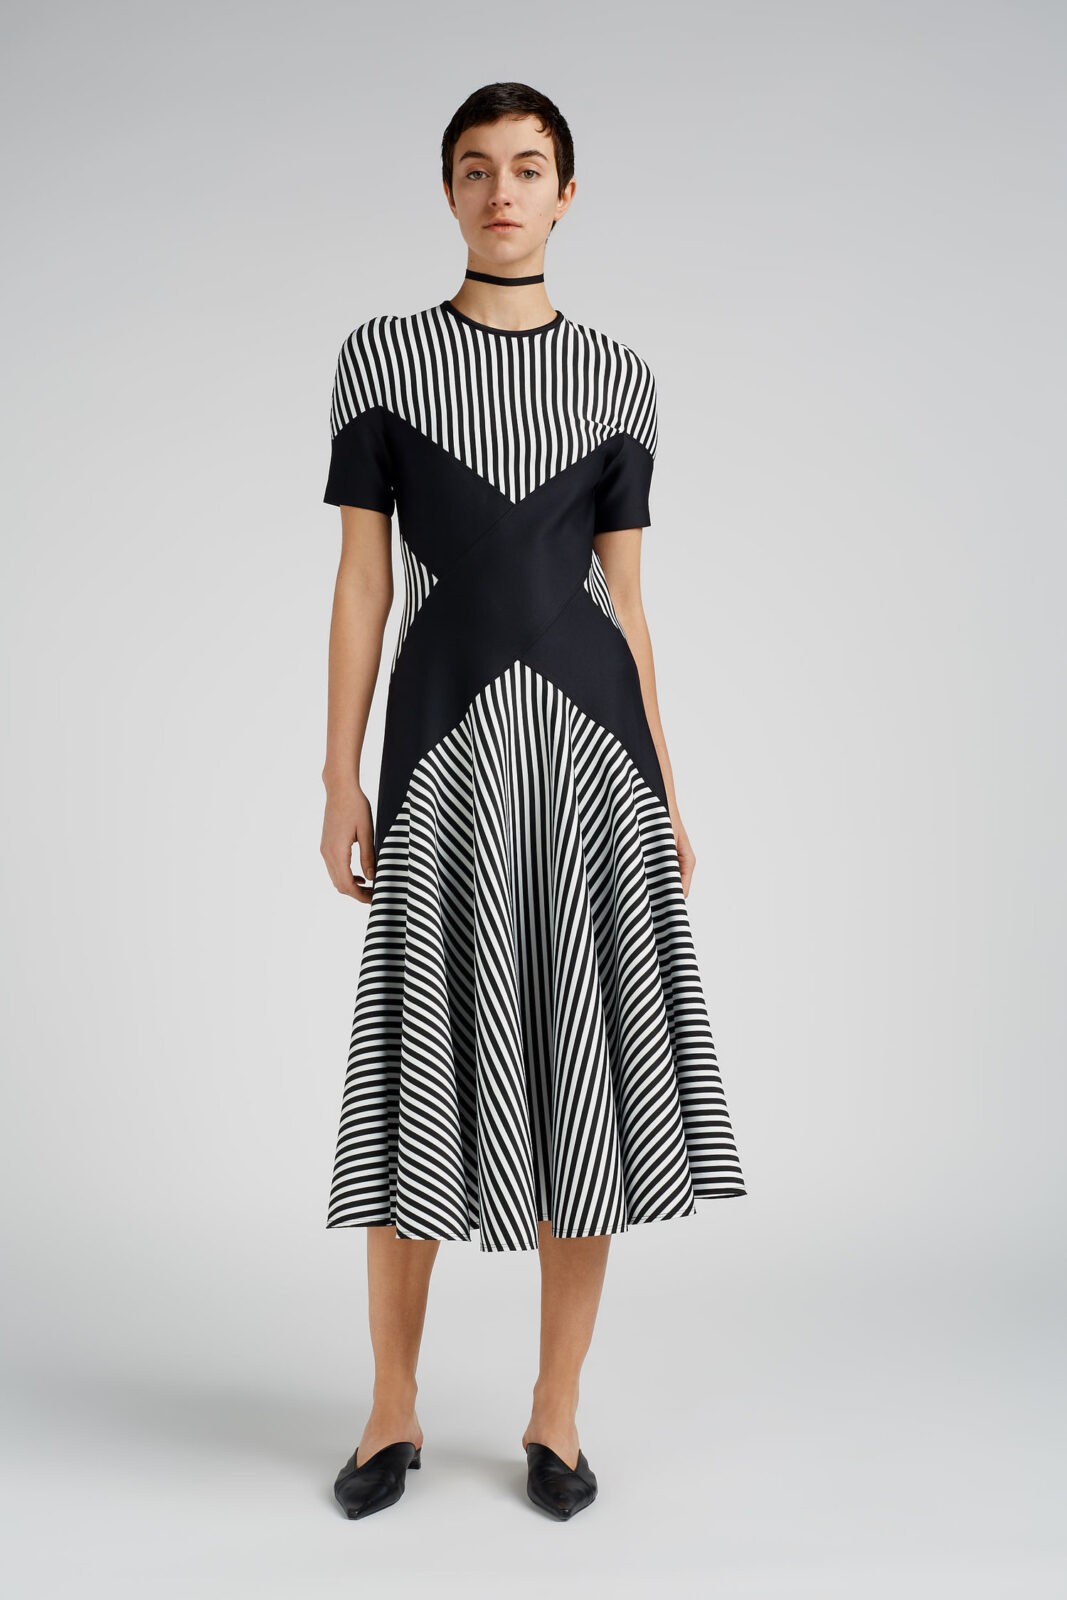 UNTTLD Sadie Dress toronto 2018